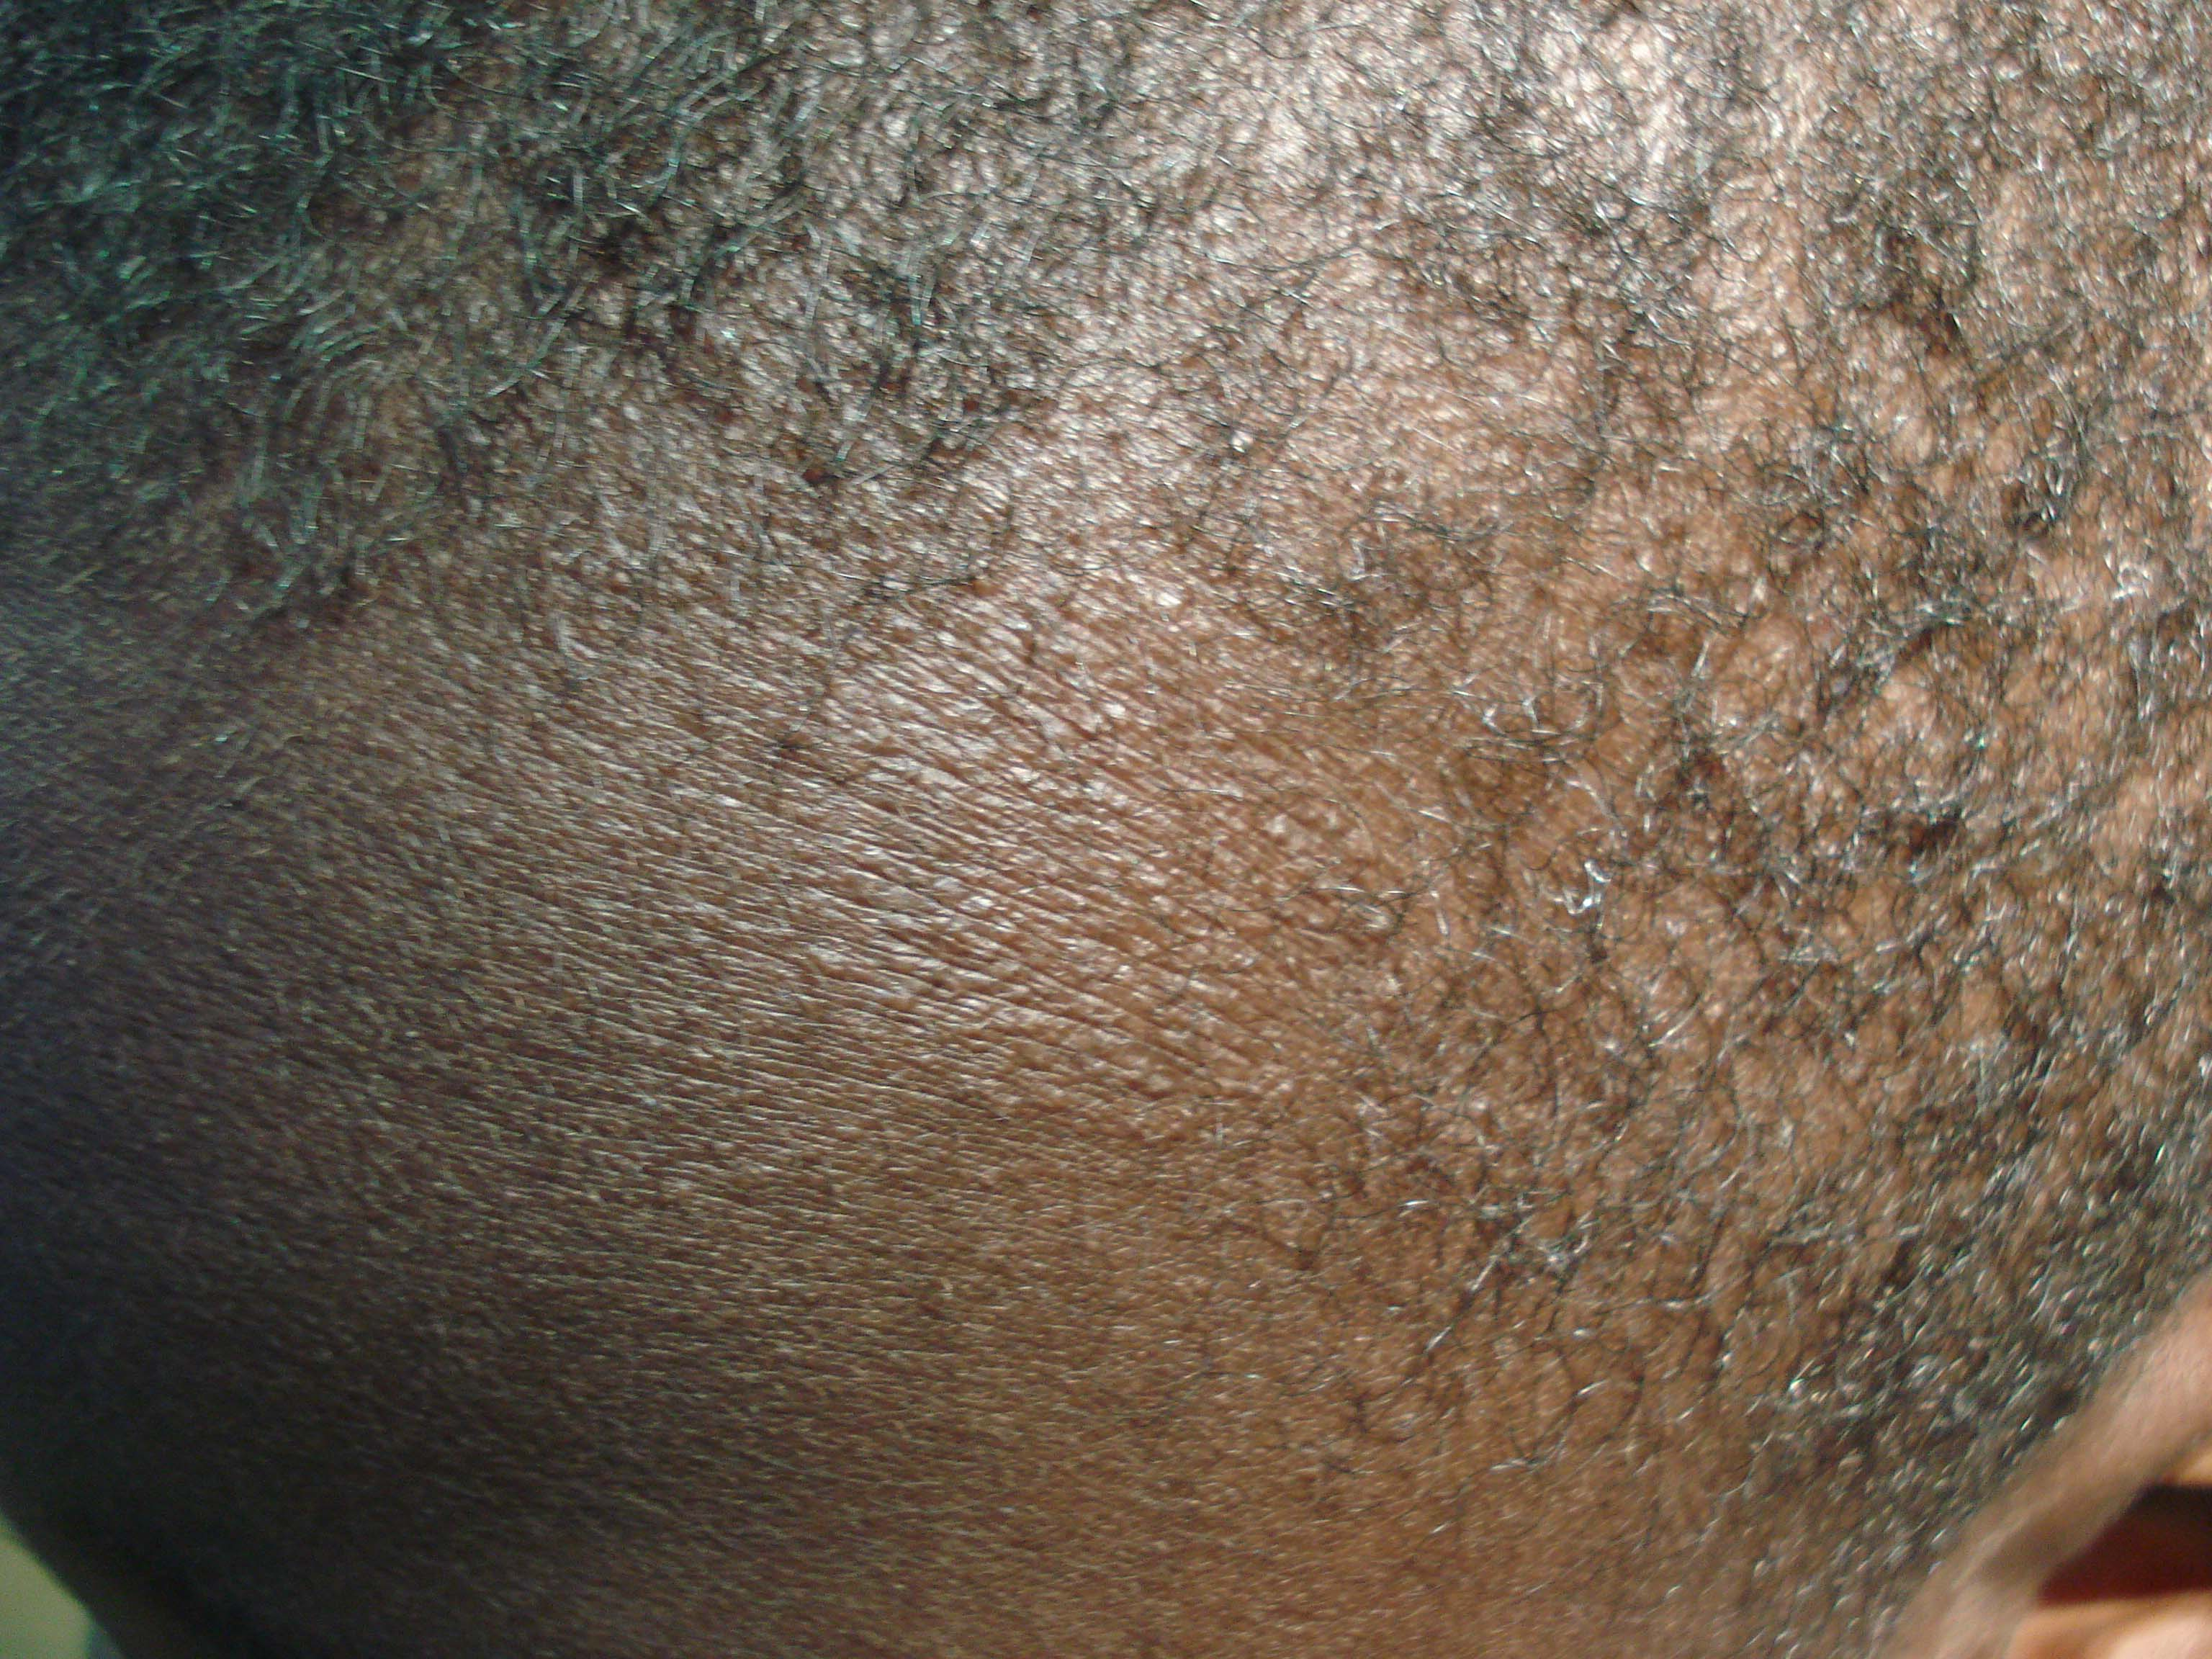 Fungal Skin Infections Common Treatment & Care